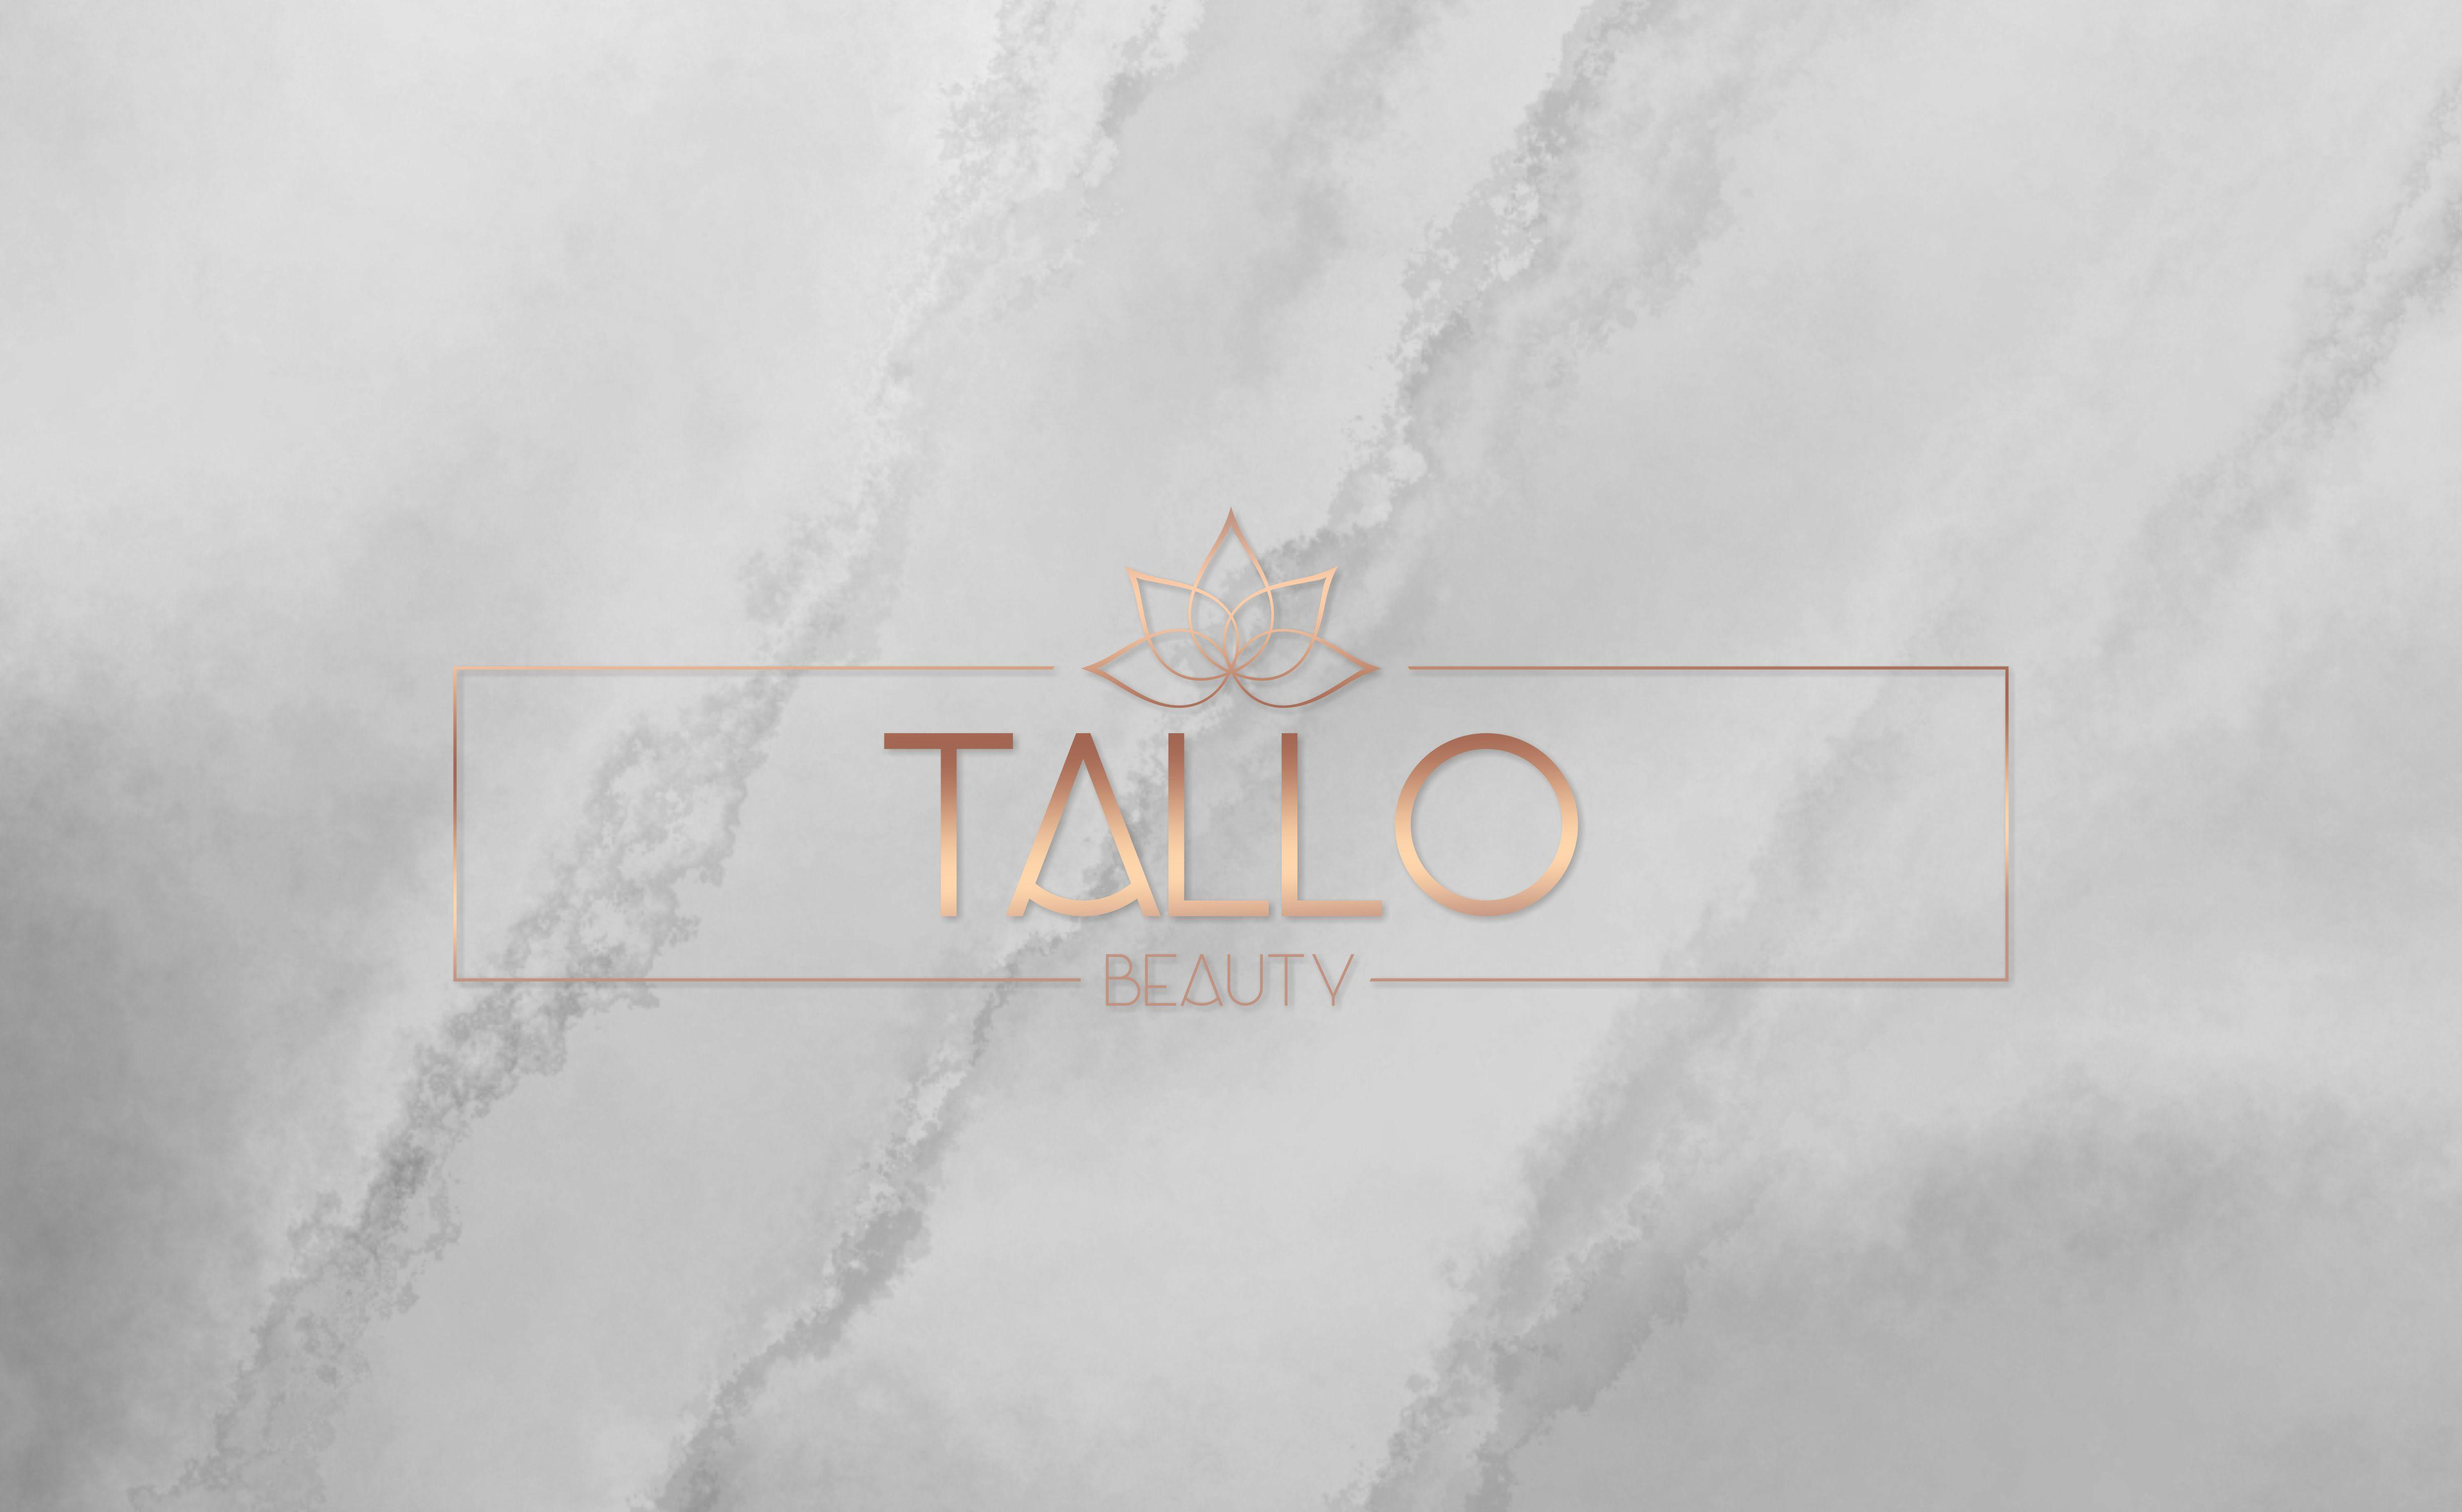 Tallo Beauty